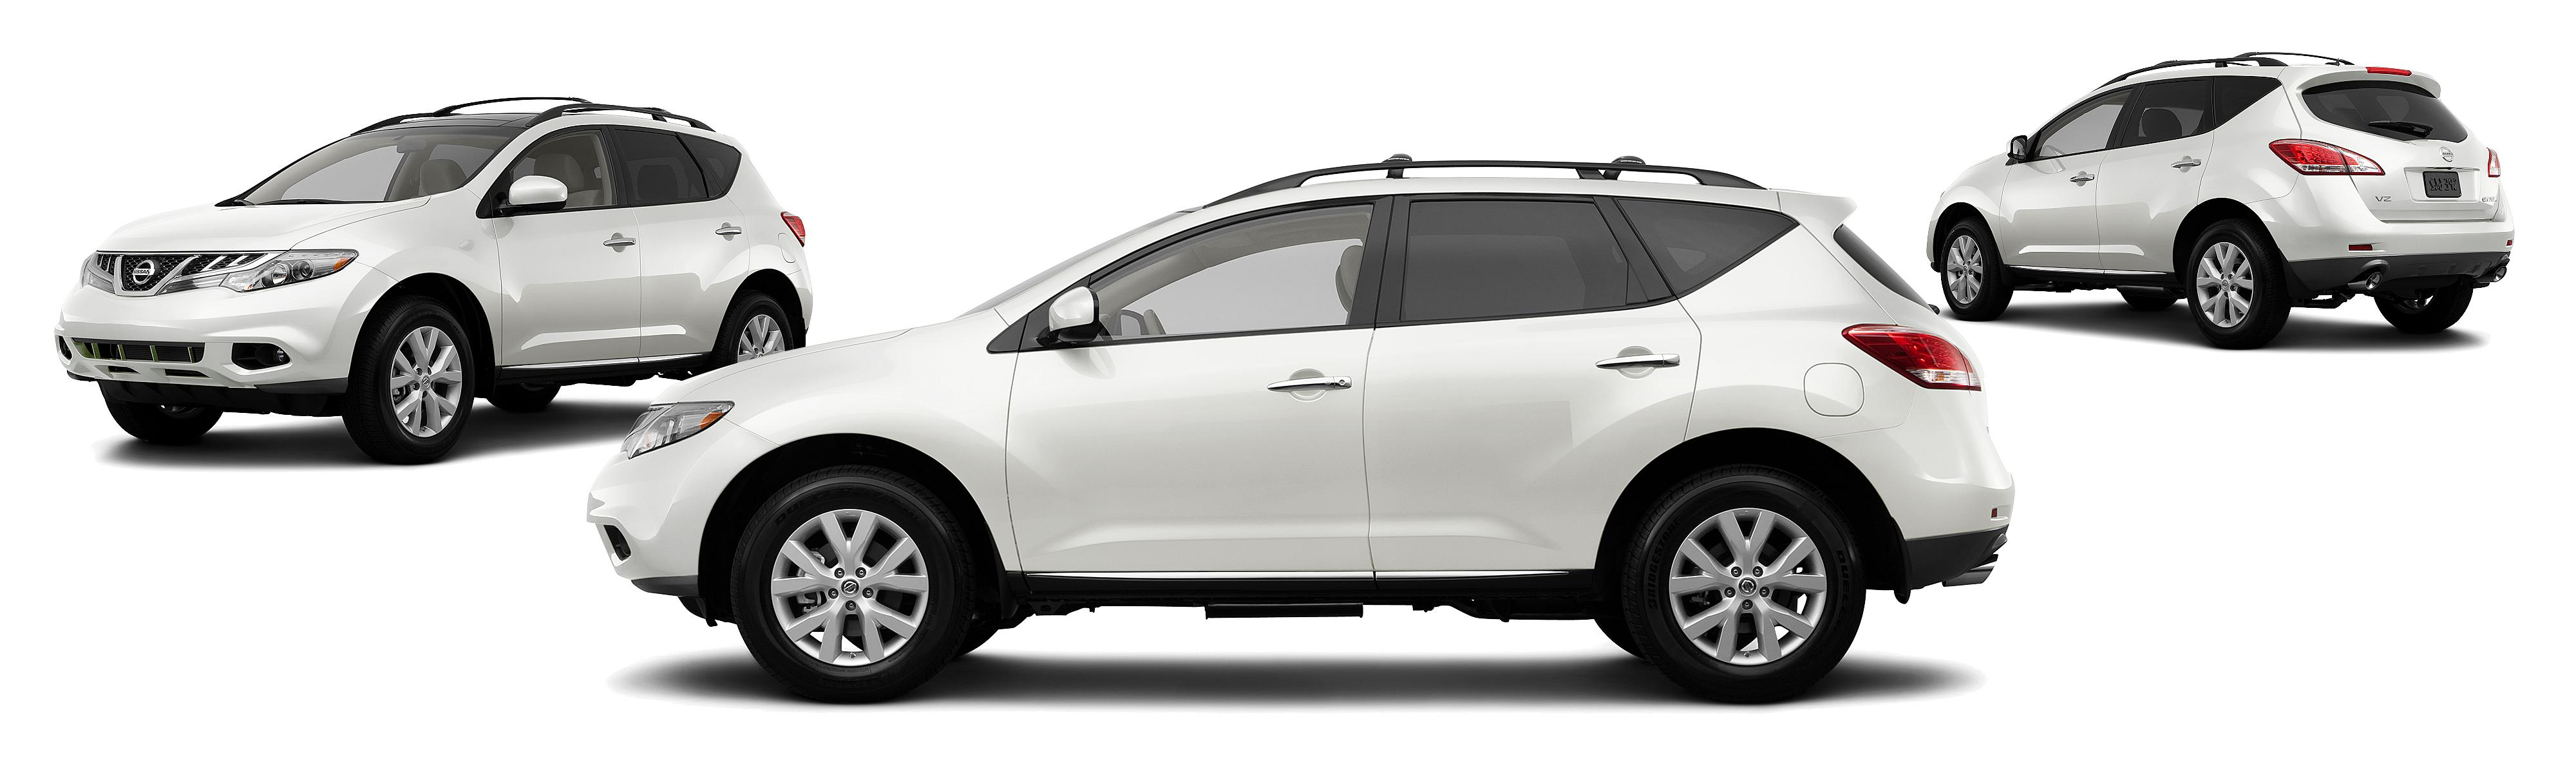 anyone crosscabriolet nissan news will murano deaths cube mourn their h kills